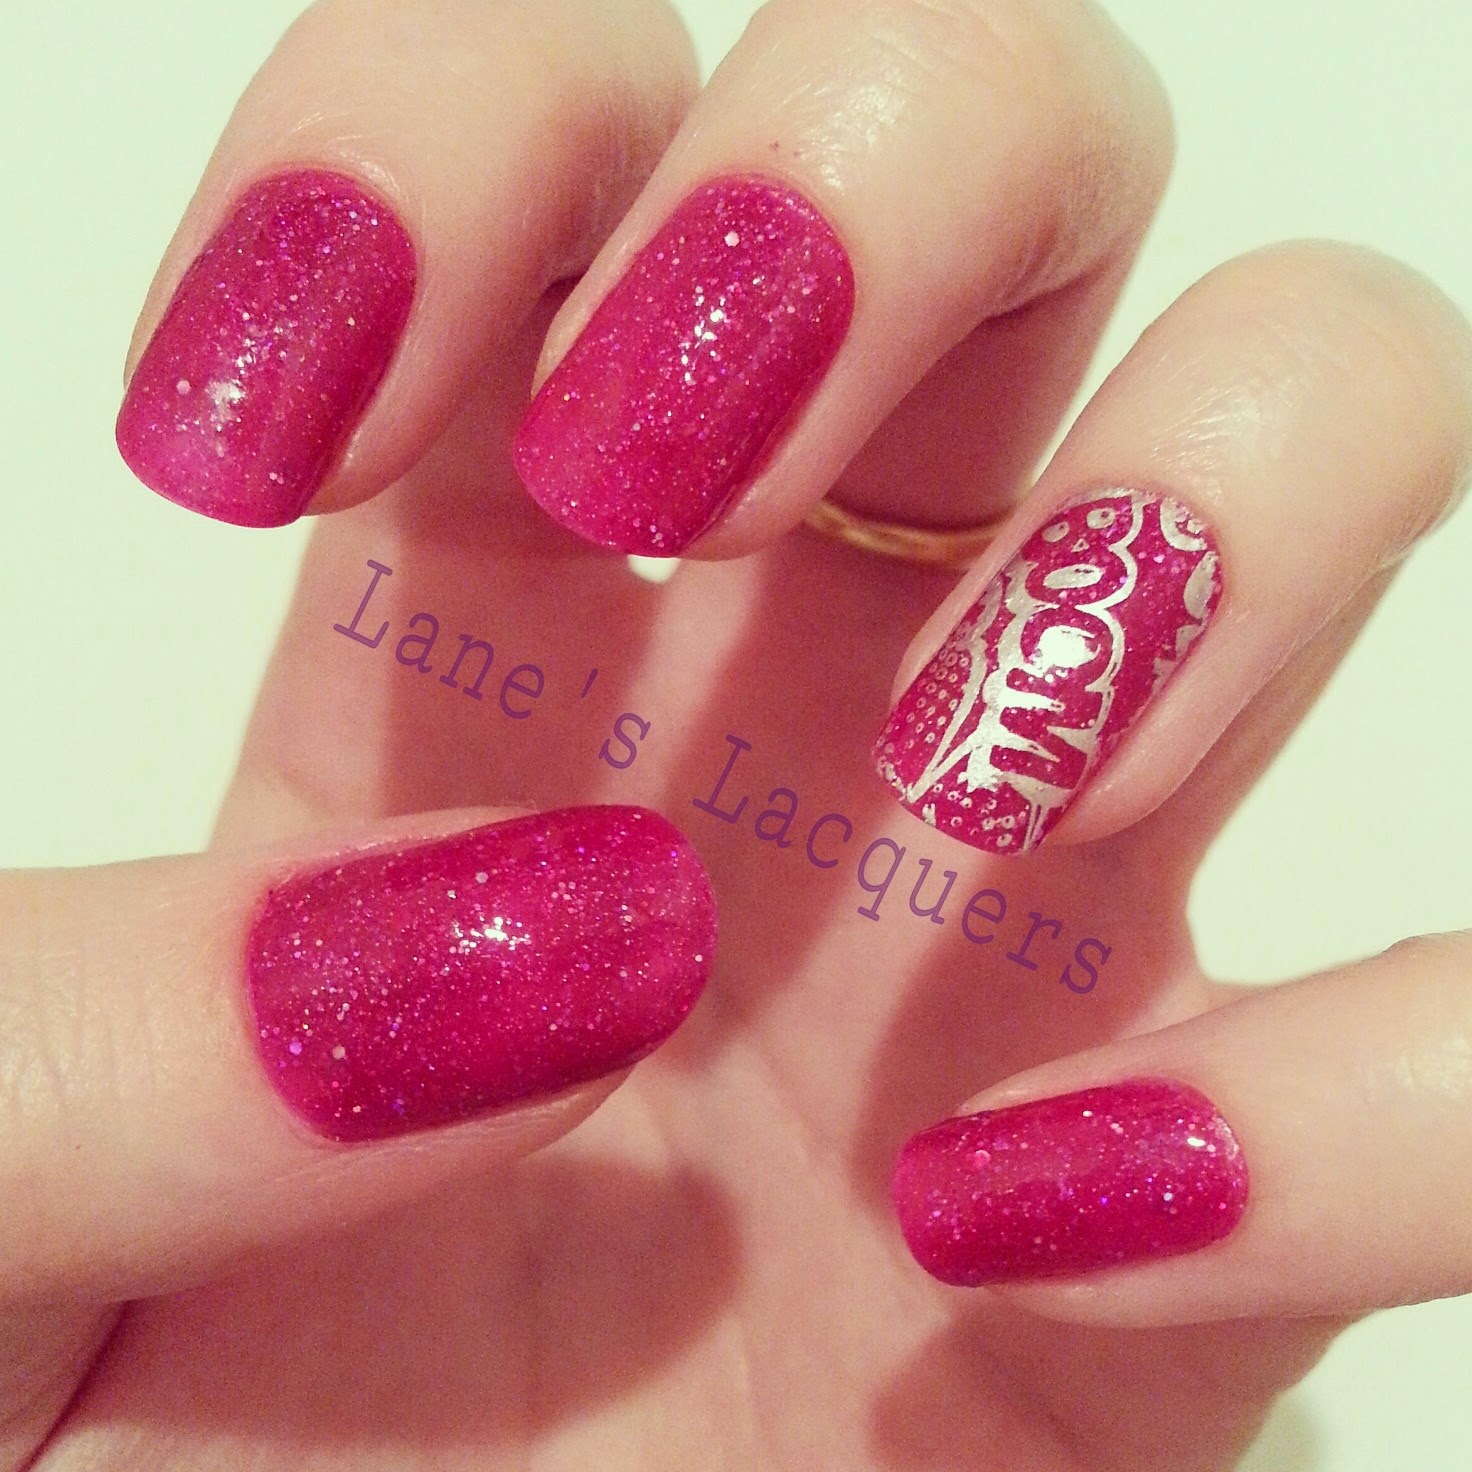 kb-shimmer-razzical-swatch-manicure